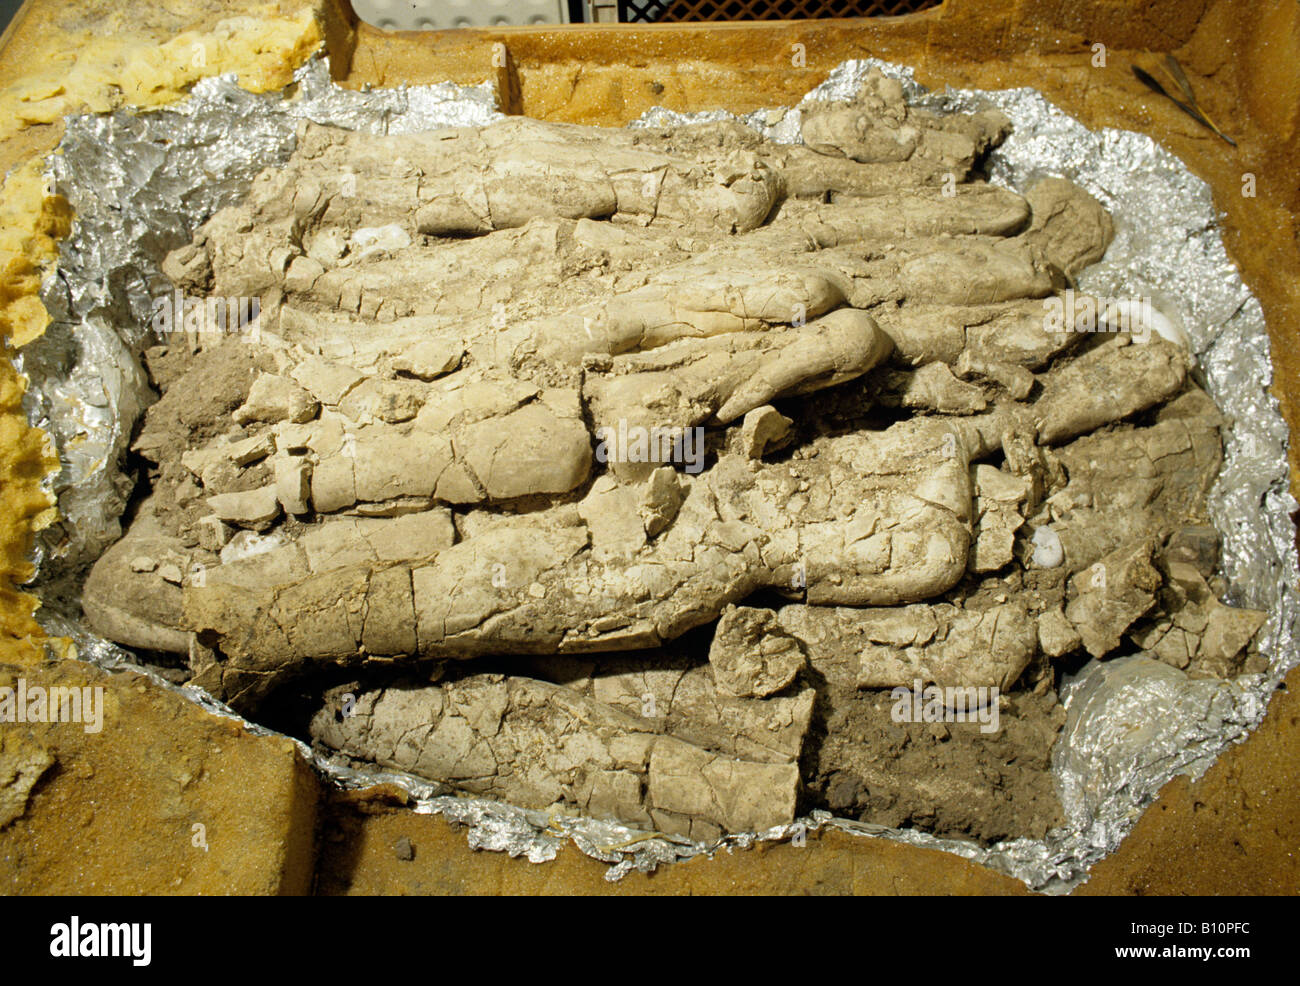 Compacted Stone Age statues as found in Amman 6000 BC Jordan - Stock Image